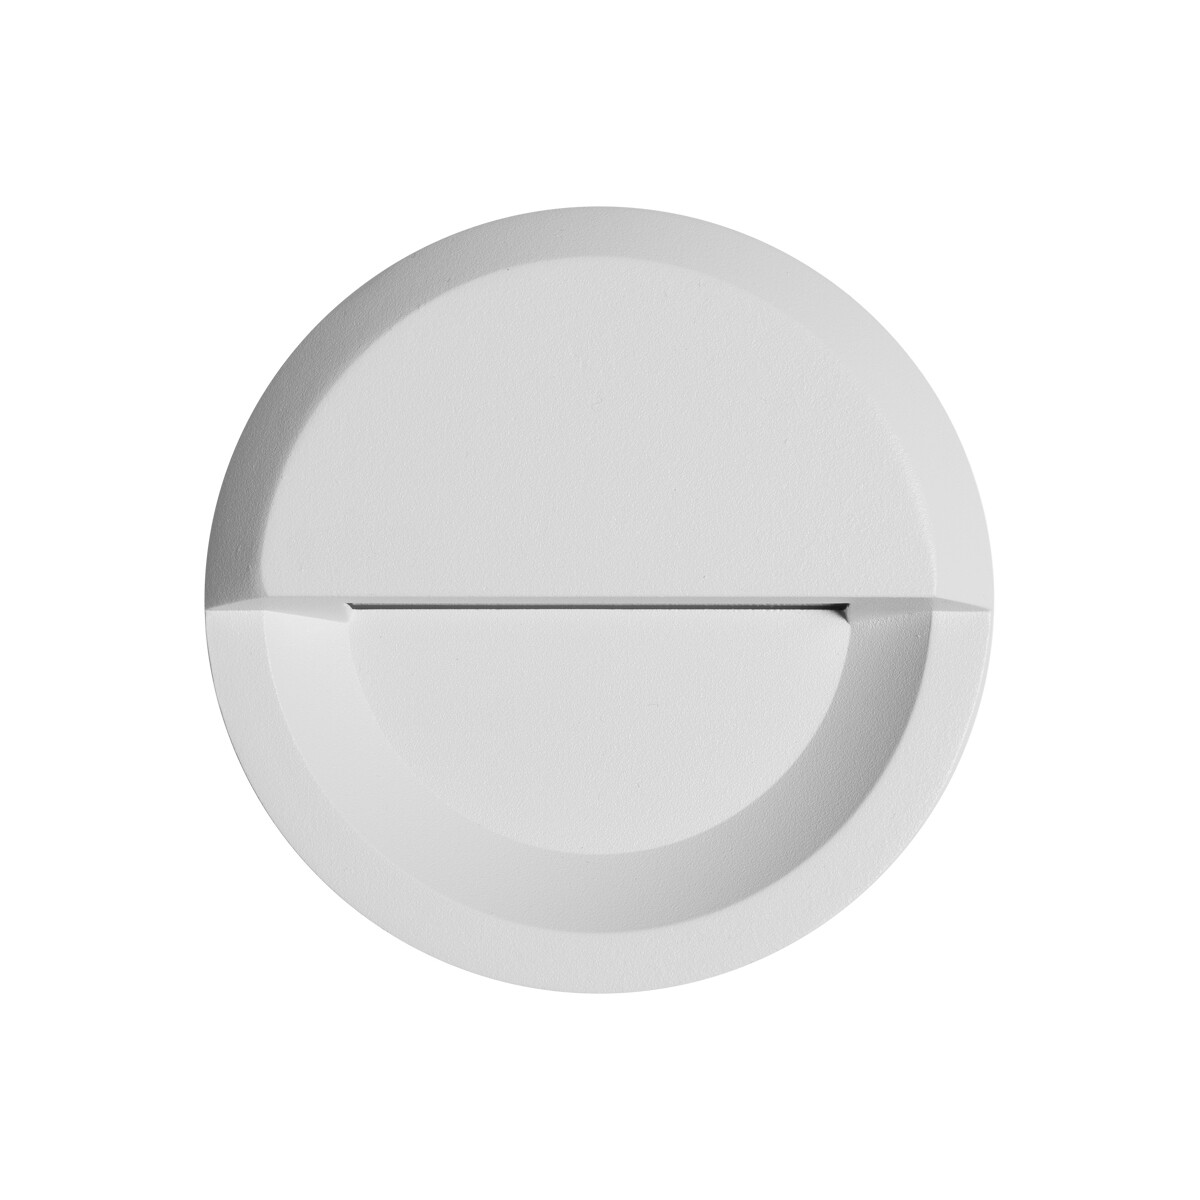 ALCOR round Wall-mounted luminaire 3W 250lm White